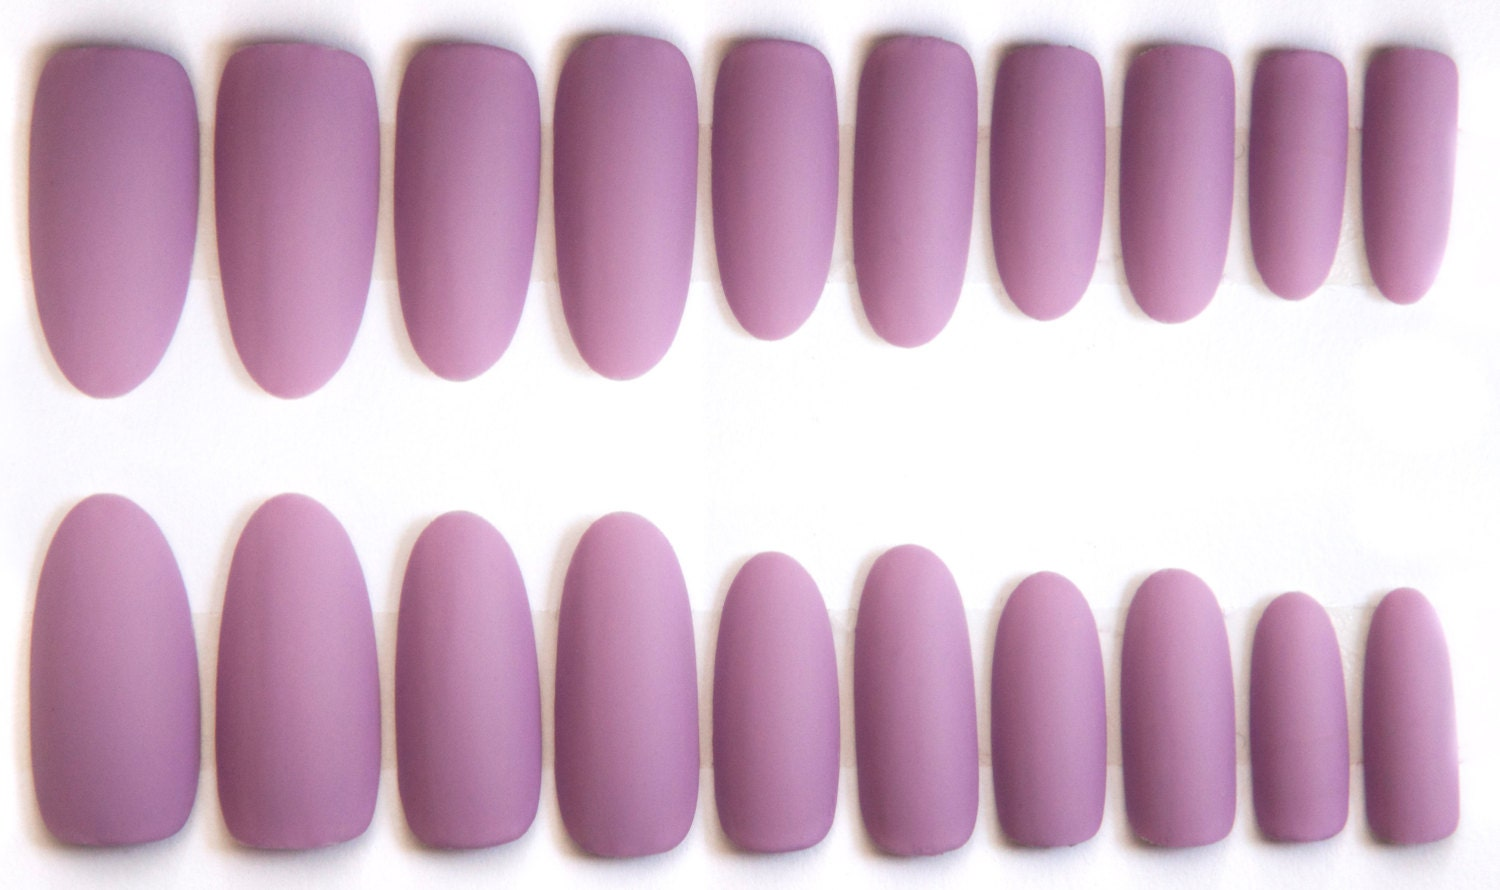 LIGHT PURPLE MATTE FAKE NAILS, PRETTY LILAC OVAL, STILETTO OR COFFIN ...